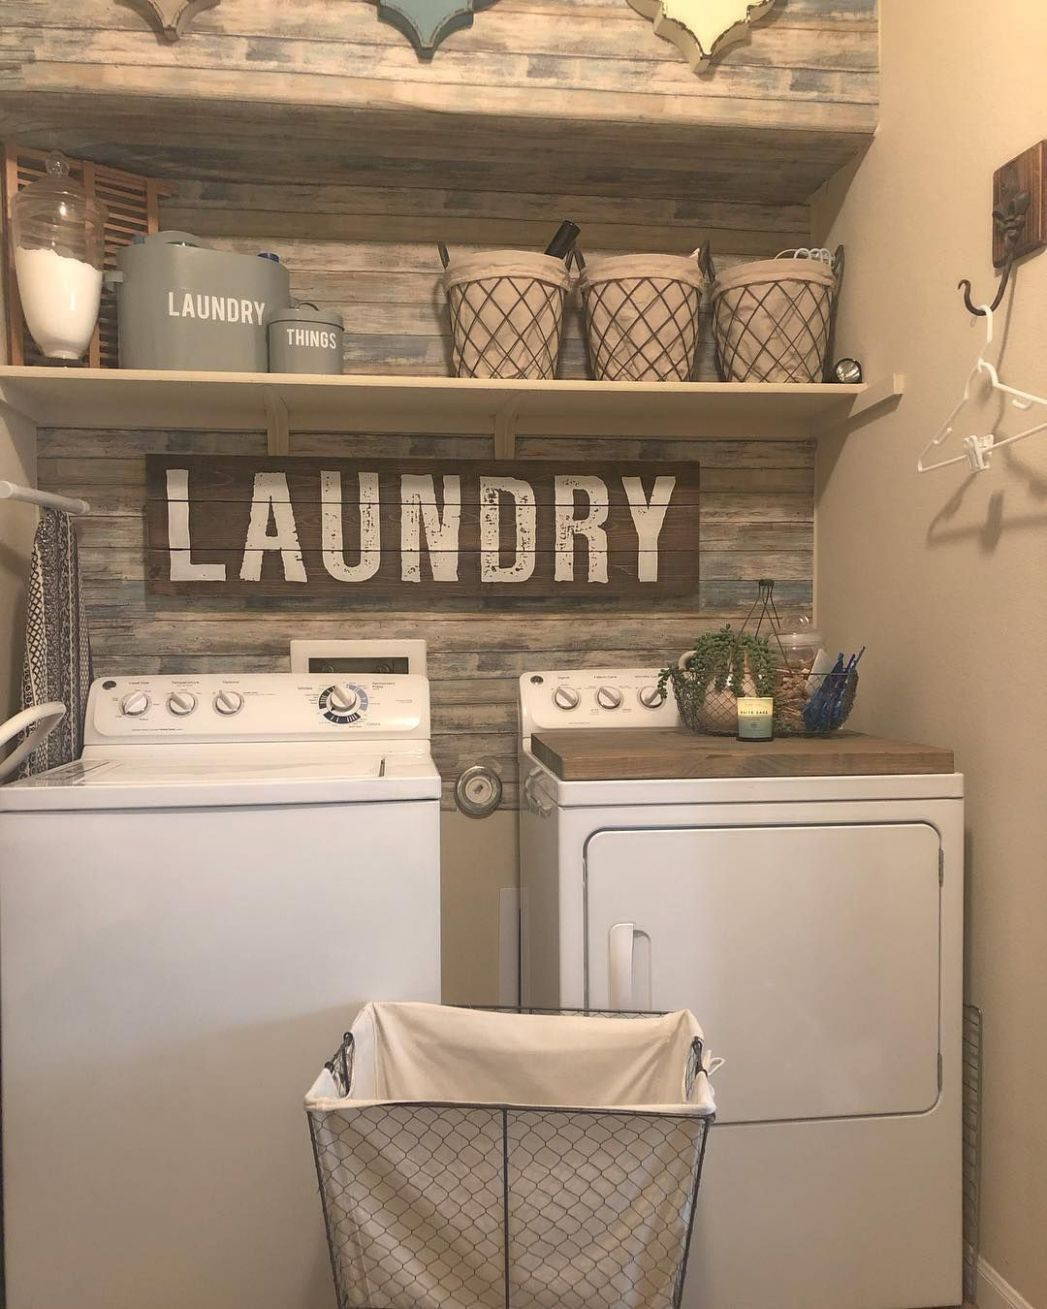 11+ Clever Laundry Room Ideas That Are Practical and Space ..